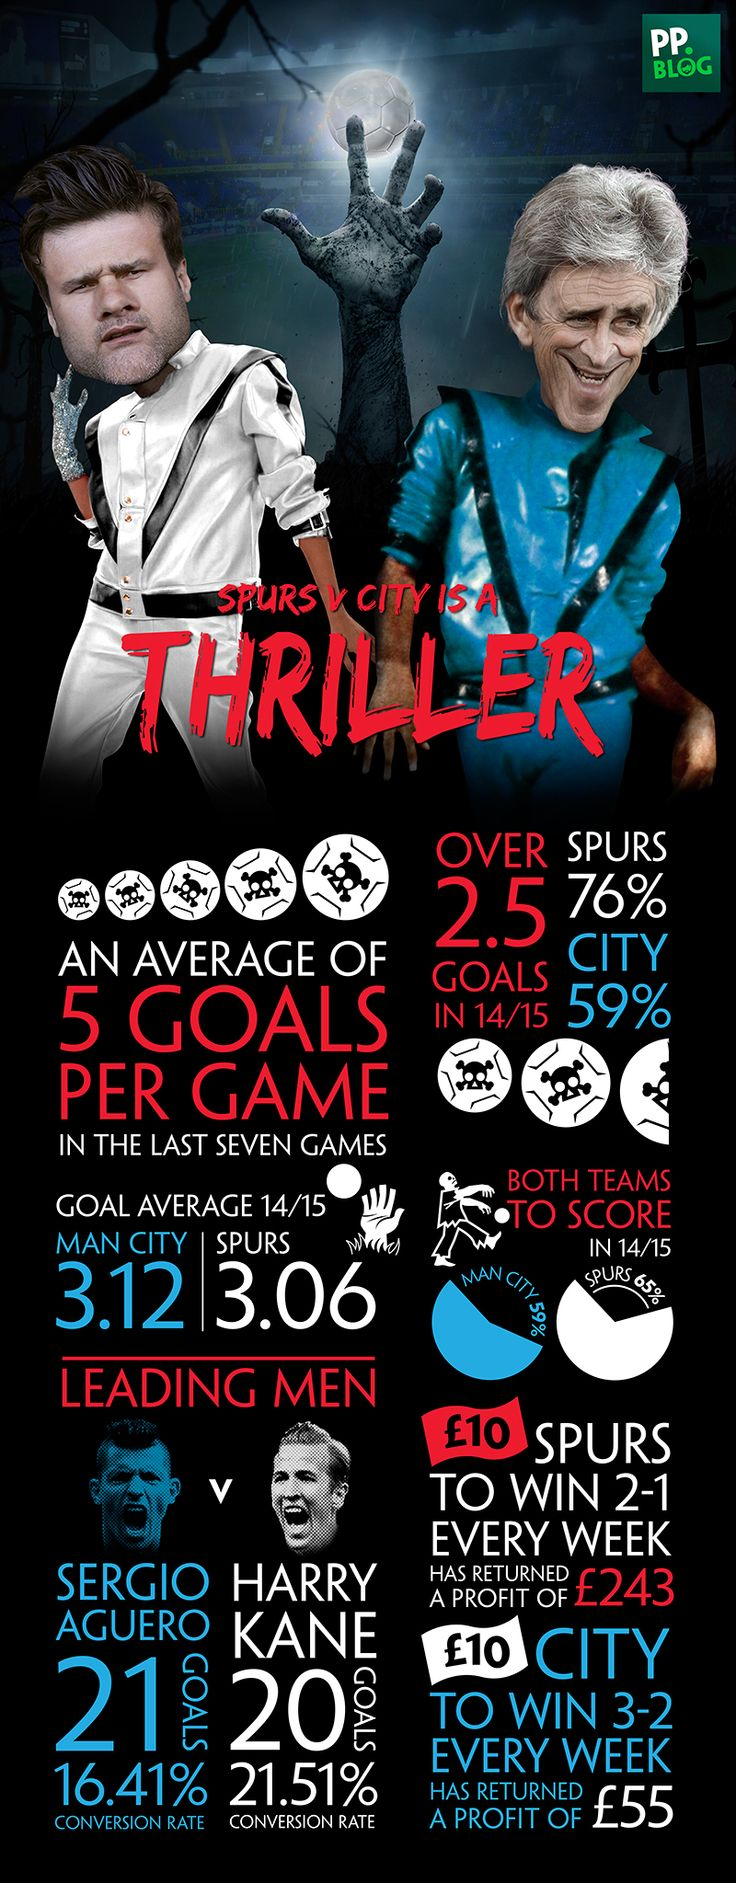 Tottenham v Manchester City: Thriller - April 30 2015 - The TV Gods in charge of deciding what football games are shown on the box have shone down on us this weekend. For on Super Sunday, Tottenham go head-to-head with Manchester City. A fixture that has seen 35 goals in its last seven meetings, and one that the stats suggest will provide us with a thriller.